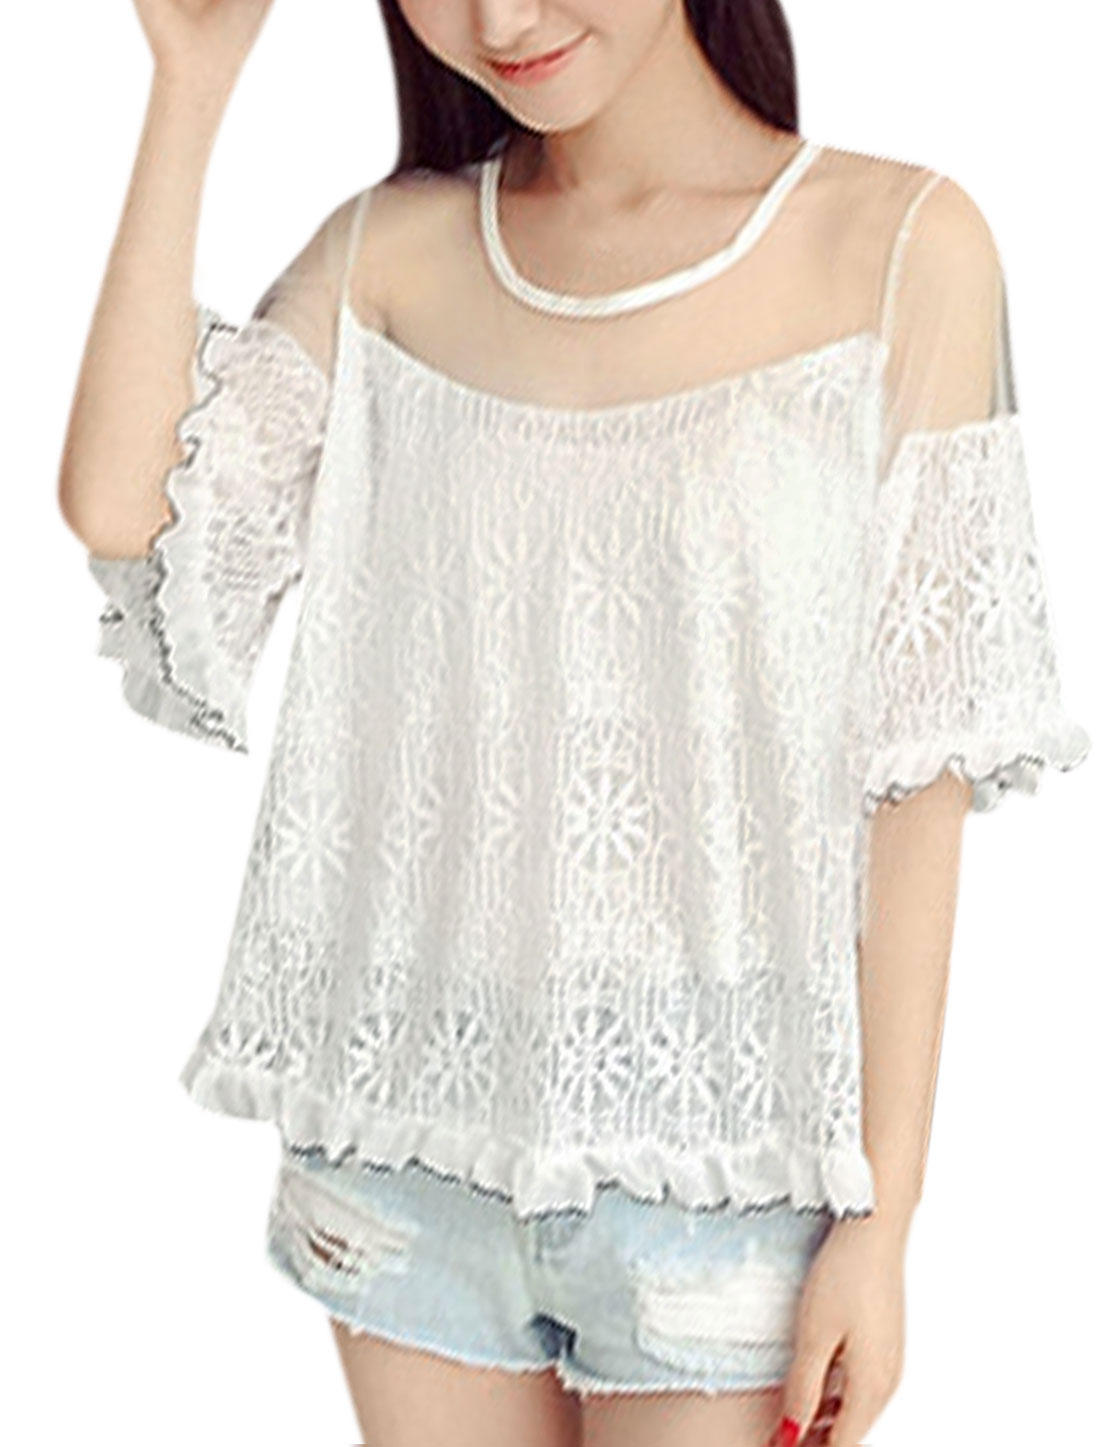 Woman Floral Design Mesh Panel Ruffled Hem Elbow Sleeves Lace Top White XS